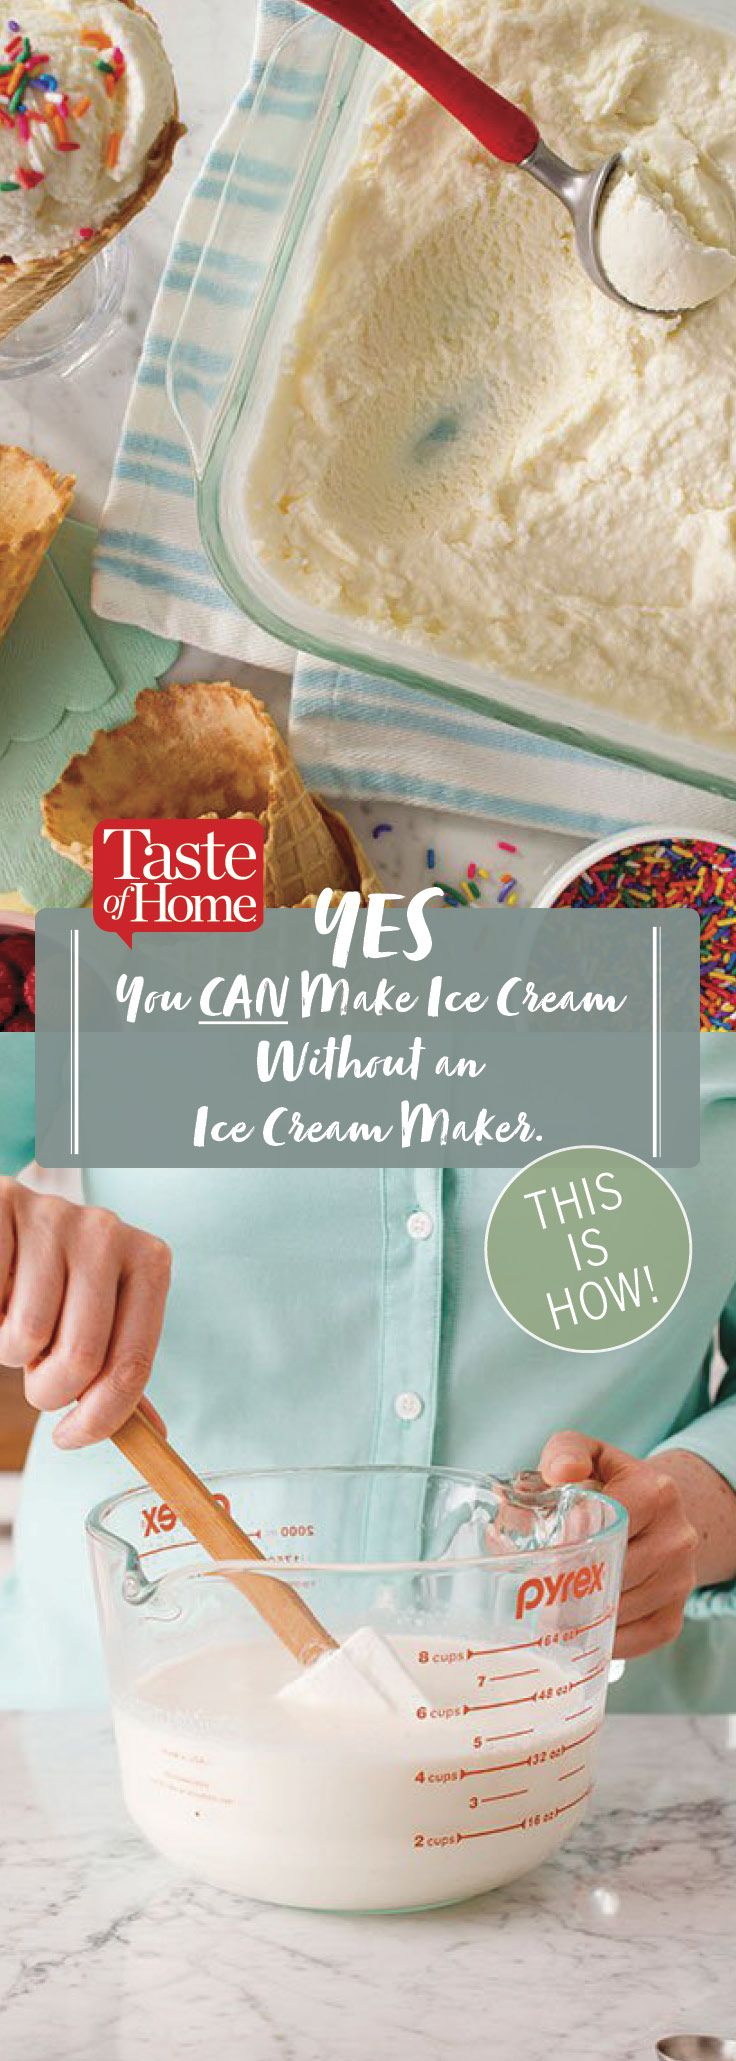 107 best Tips & How-To images on Pinterest in 2018   Taste of home ...